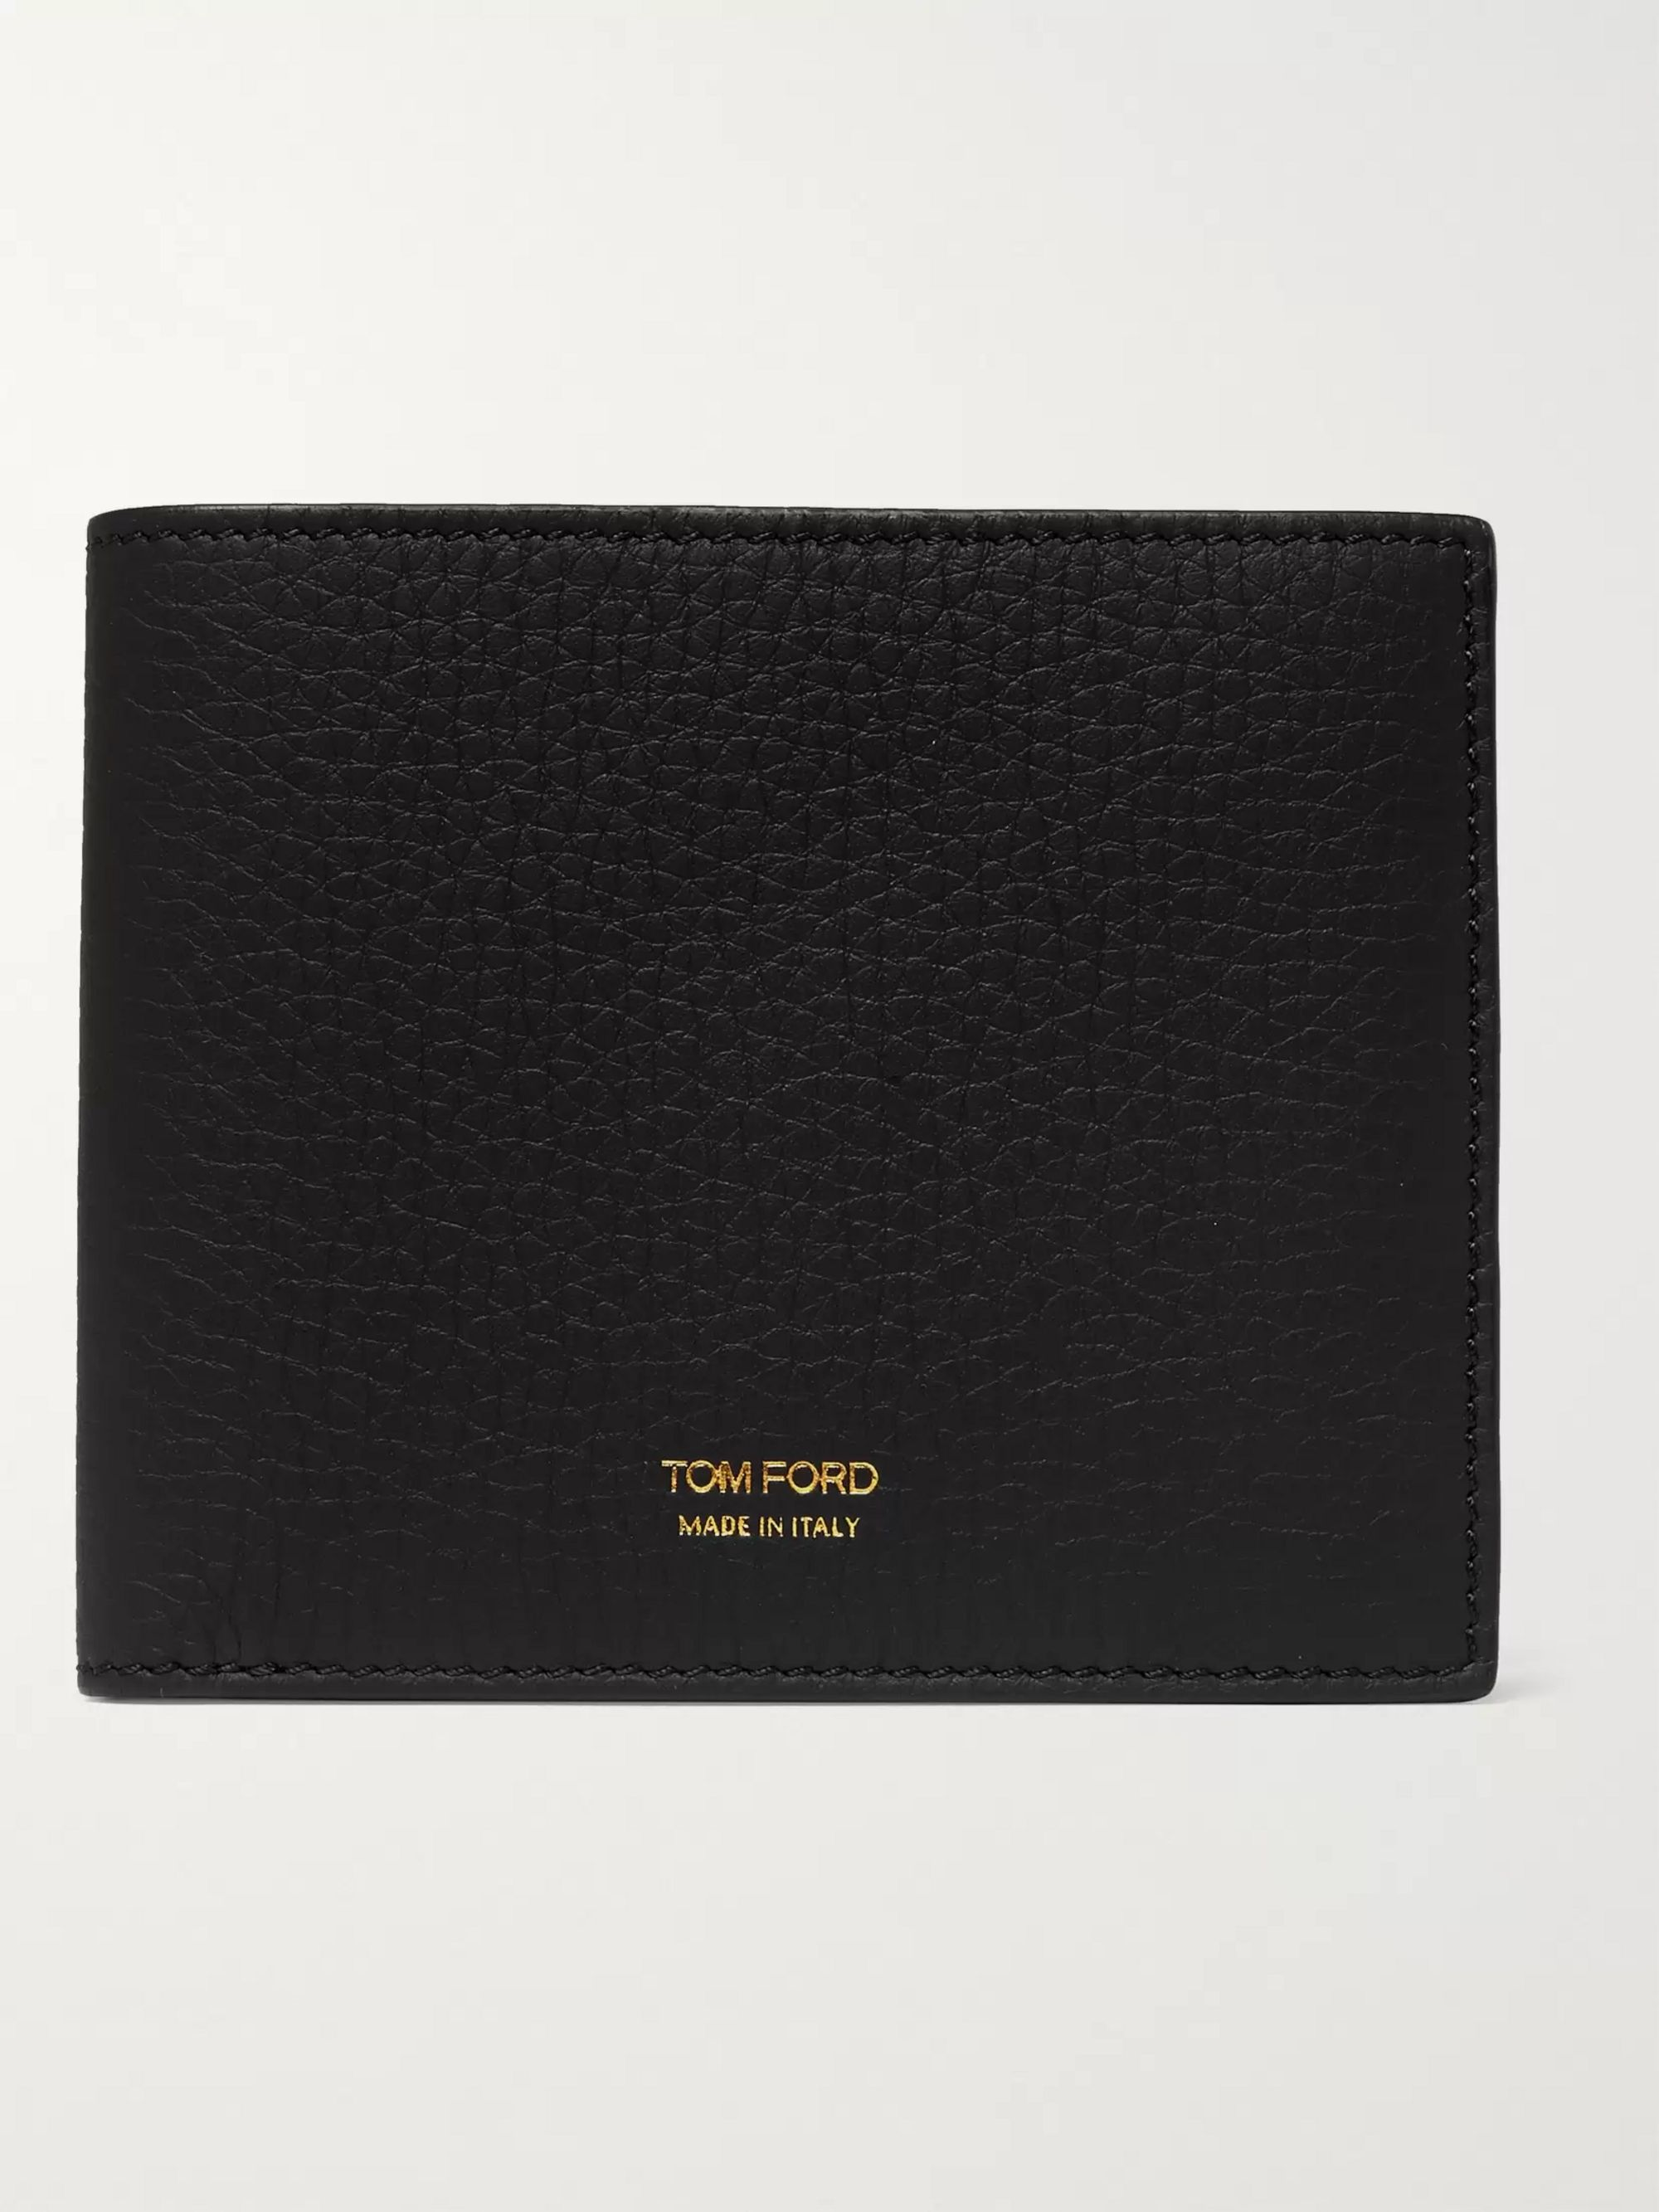 tom ford wallet